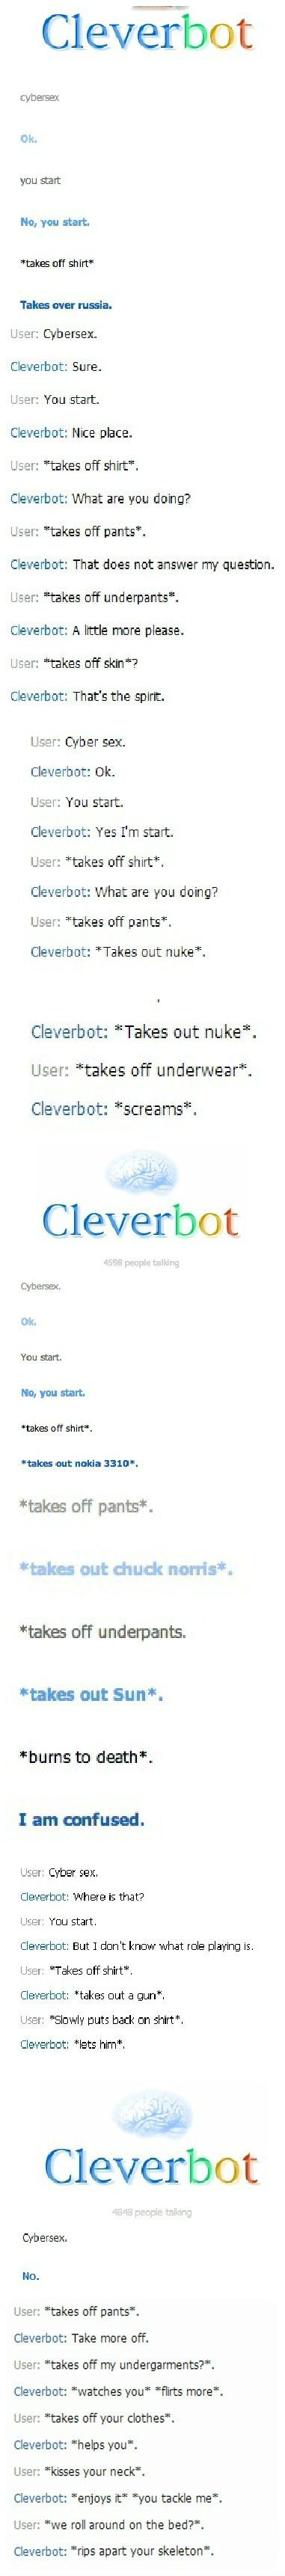 Cleverbot cybersex Go fuck yourself with a flagpole. Clev: *tickles myself with a feather* *giggles and laughs*   *takes out whip and chains* you want to play 60 shades of grey? Clev: *slices at you with sword* #cleverbot